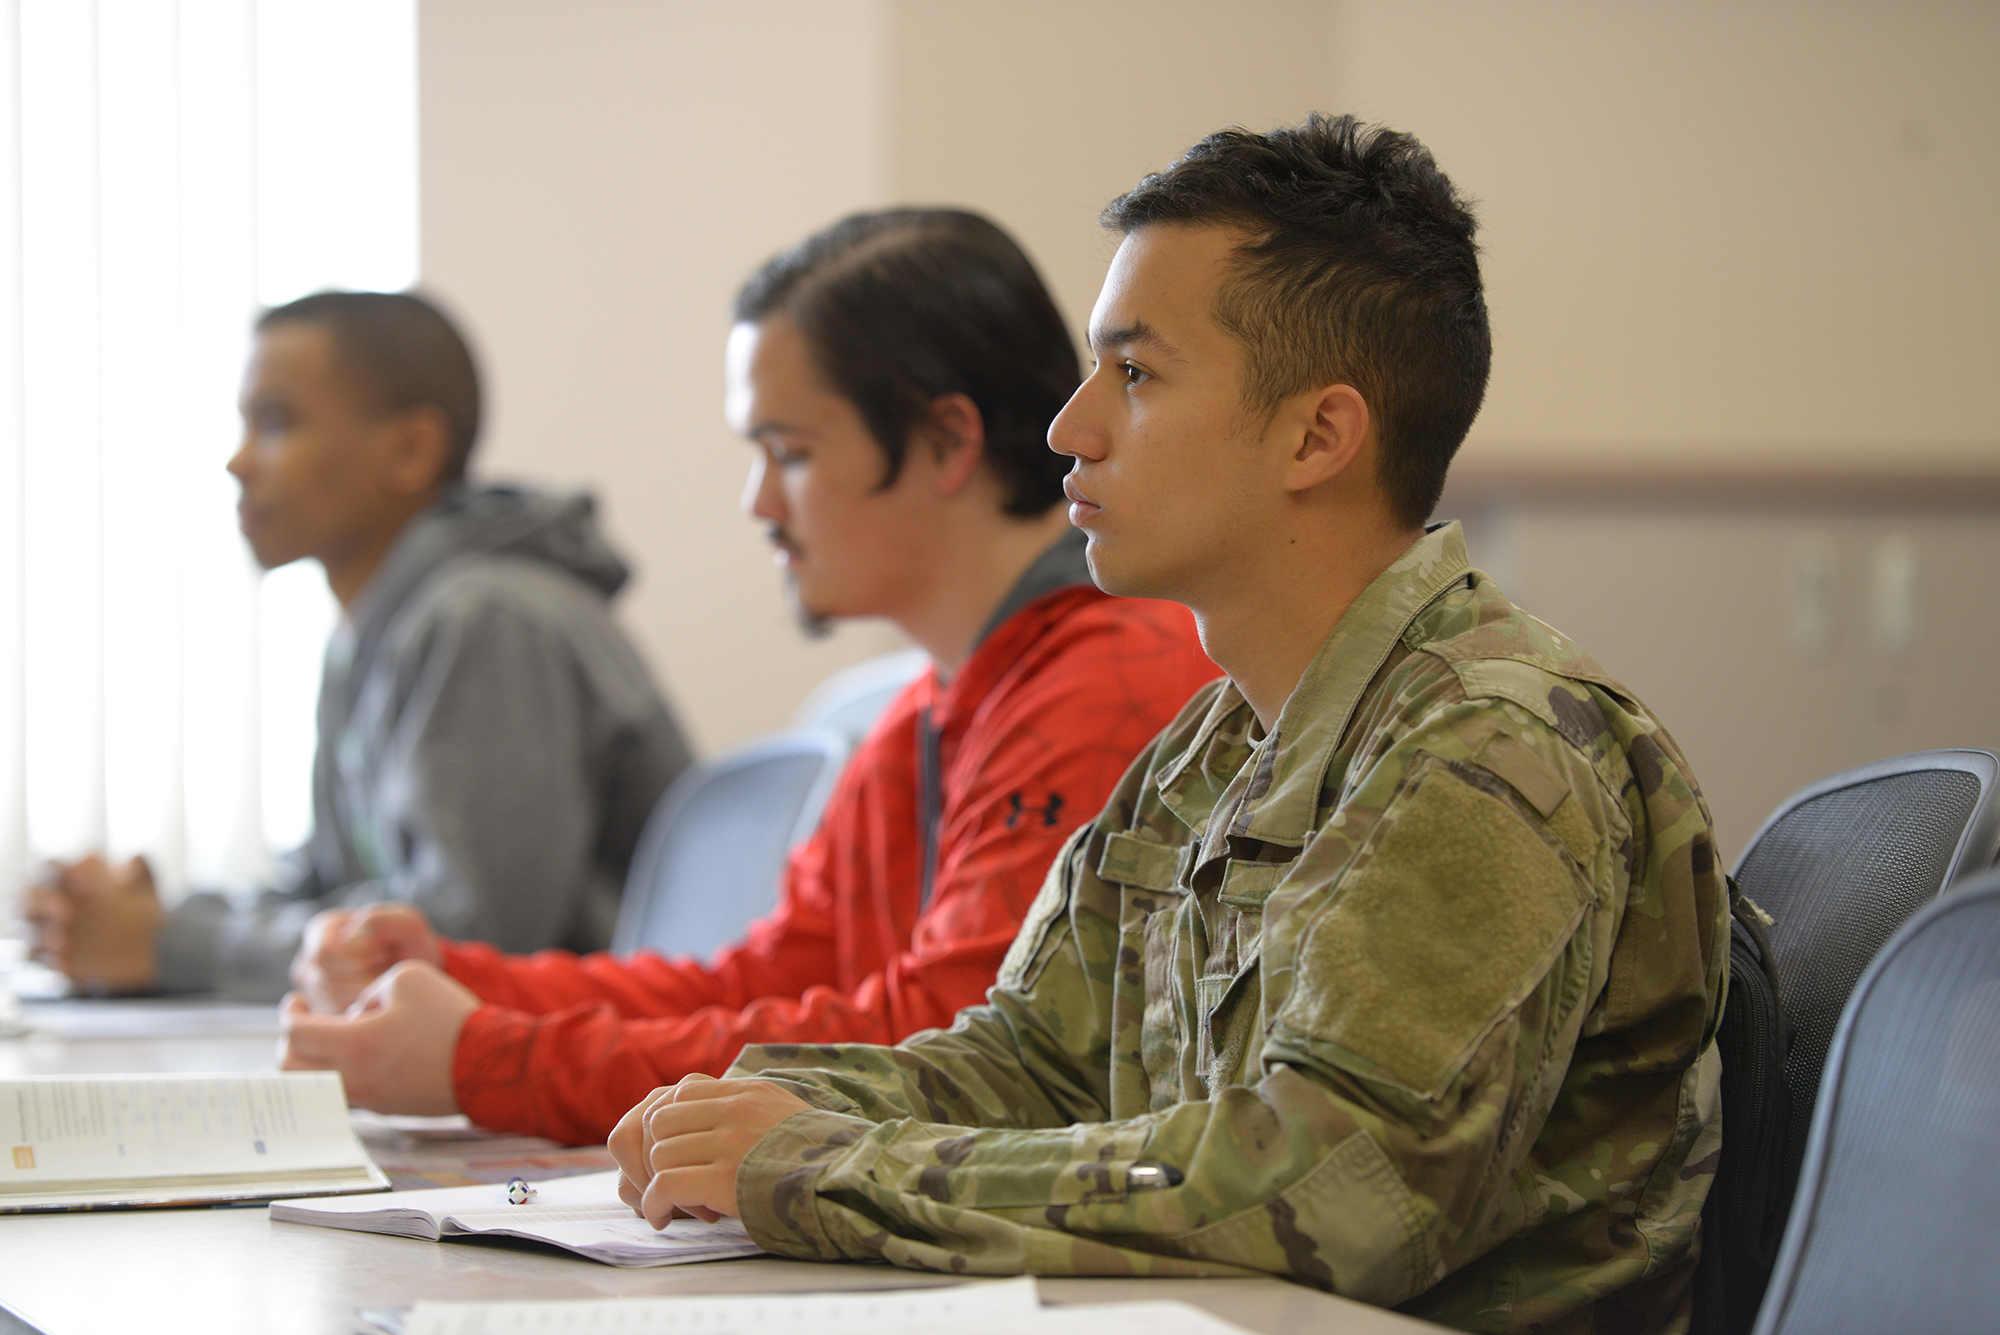 Military student studying in a classroom